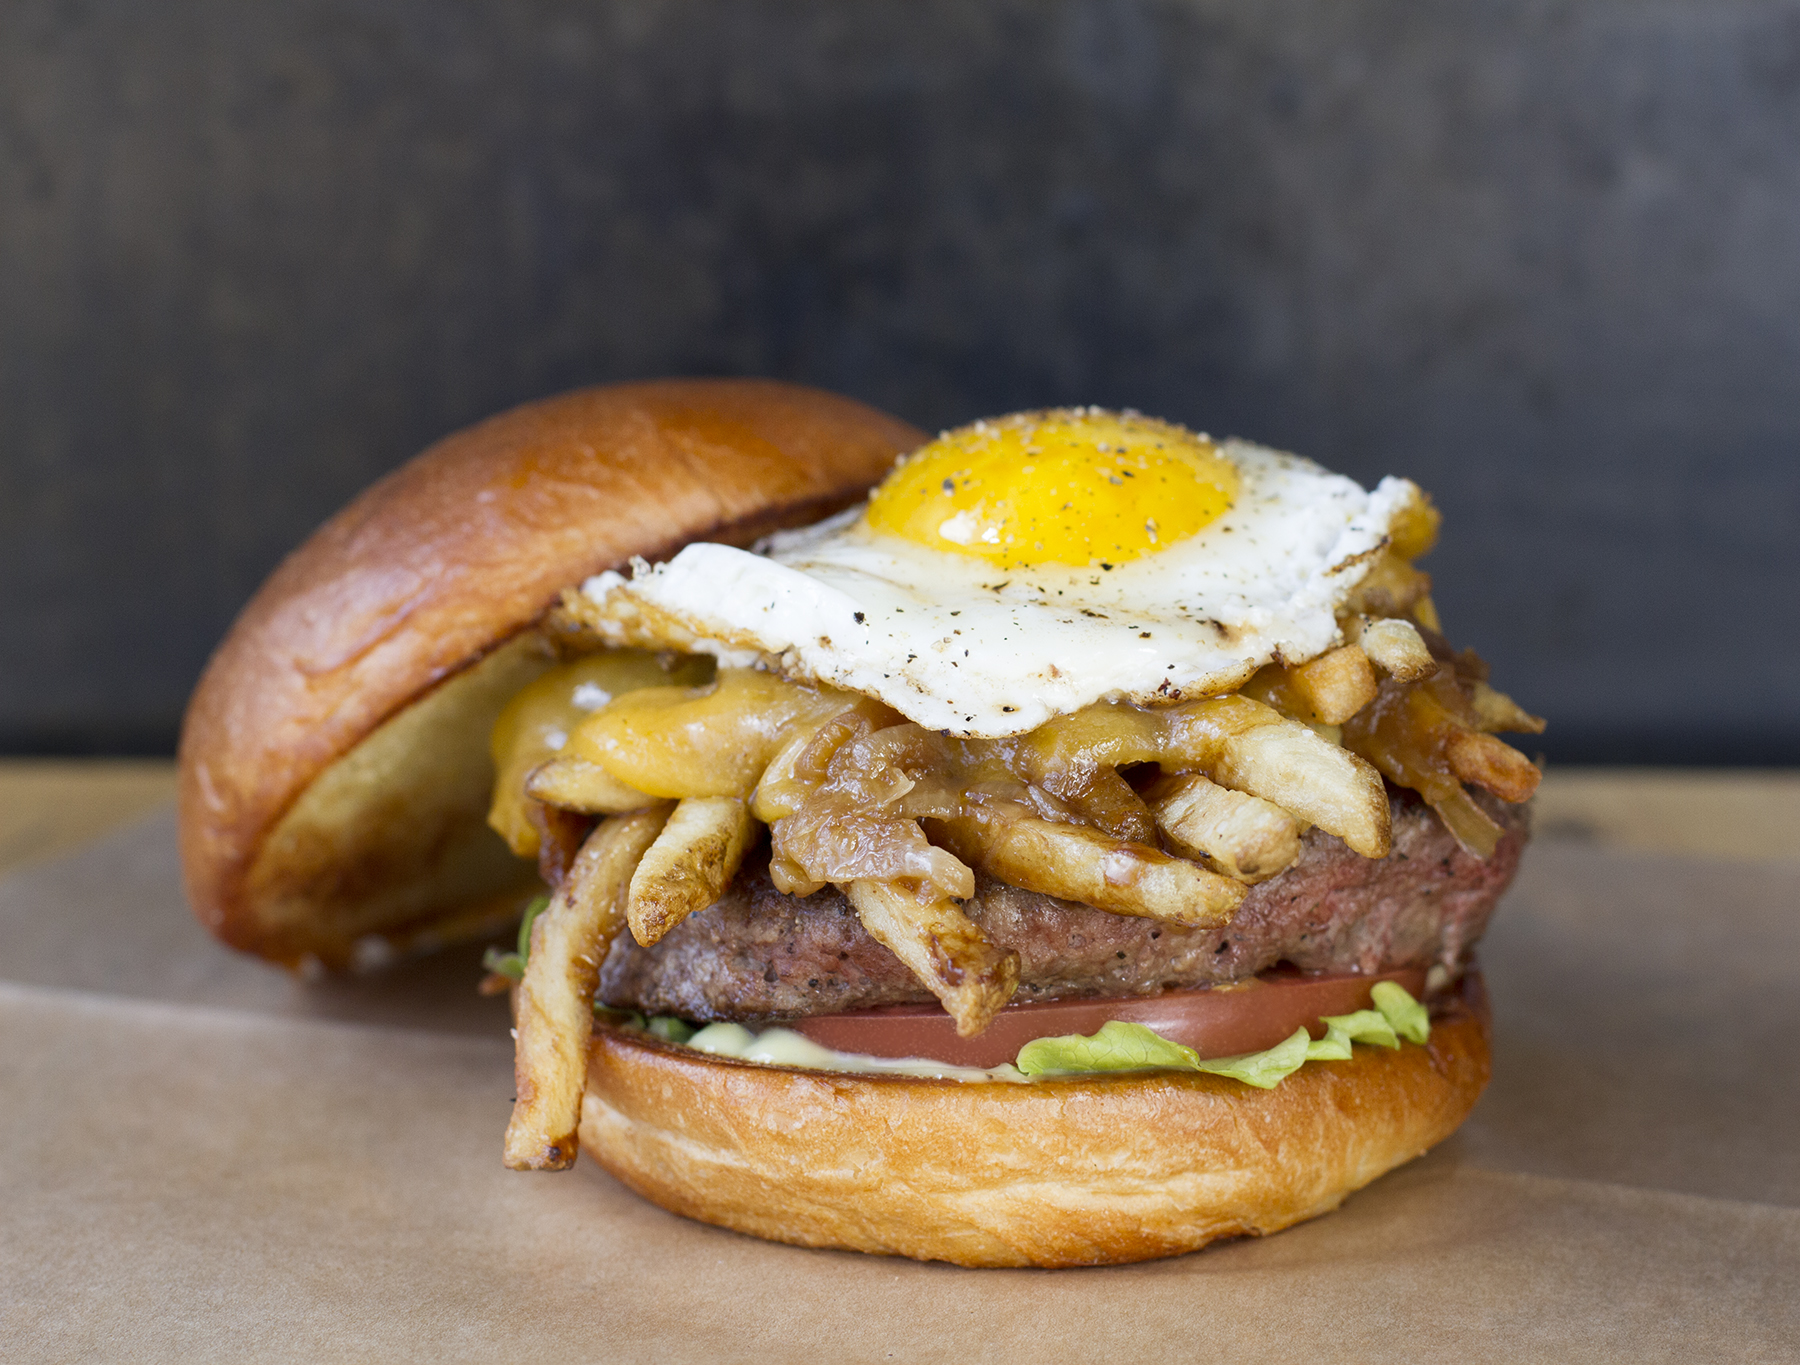 Behold the poutine burger.